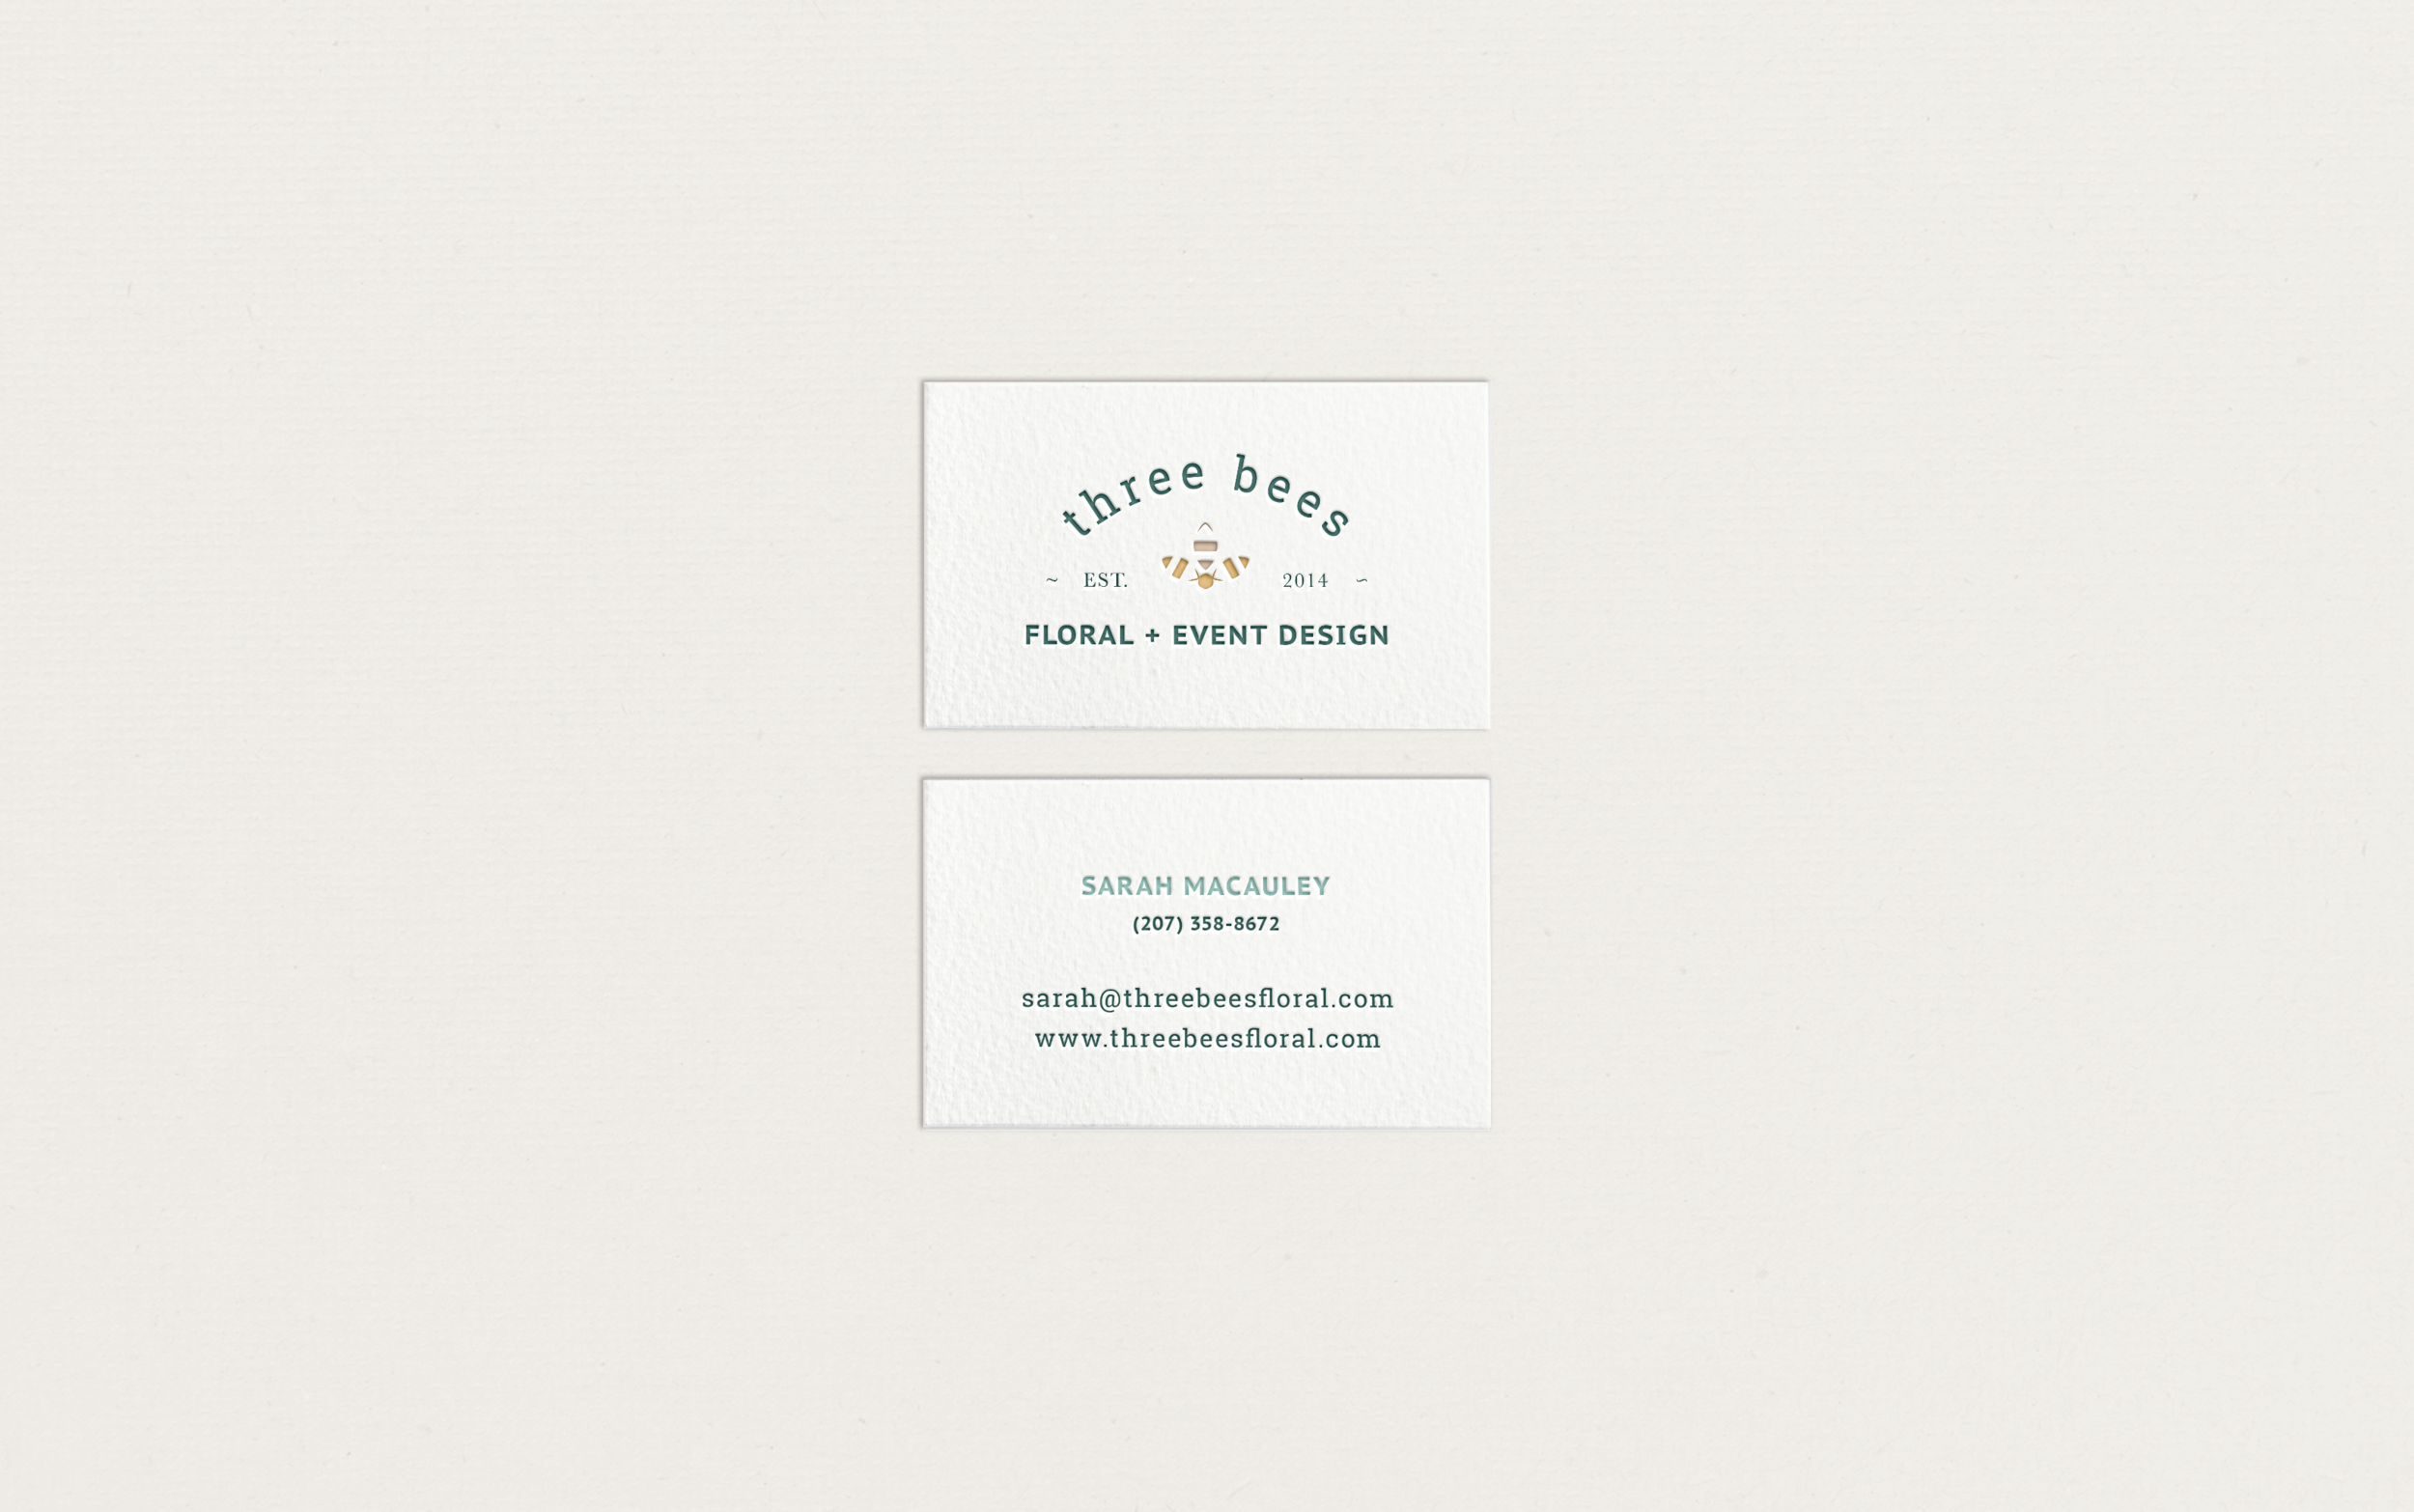 Three Bees Business Card Revised 1.png